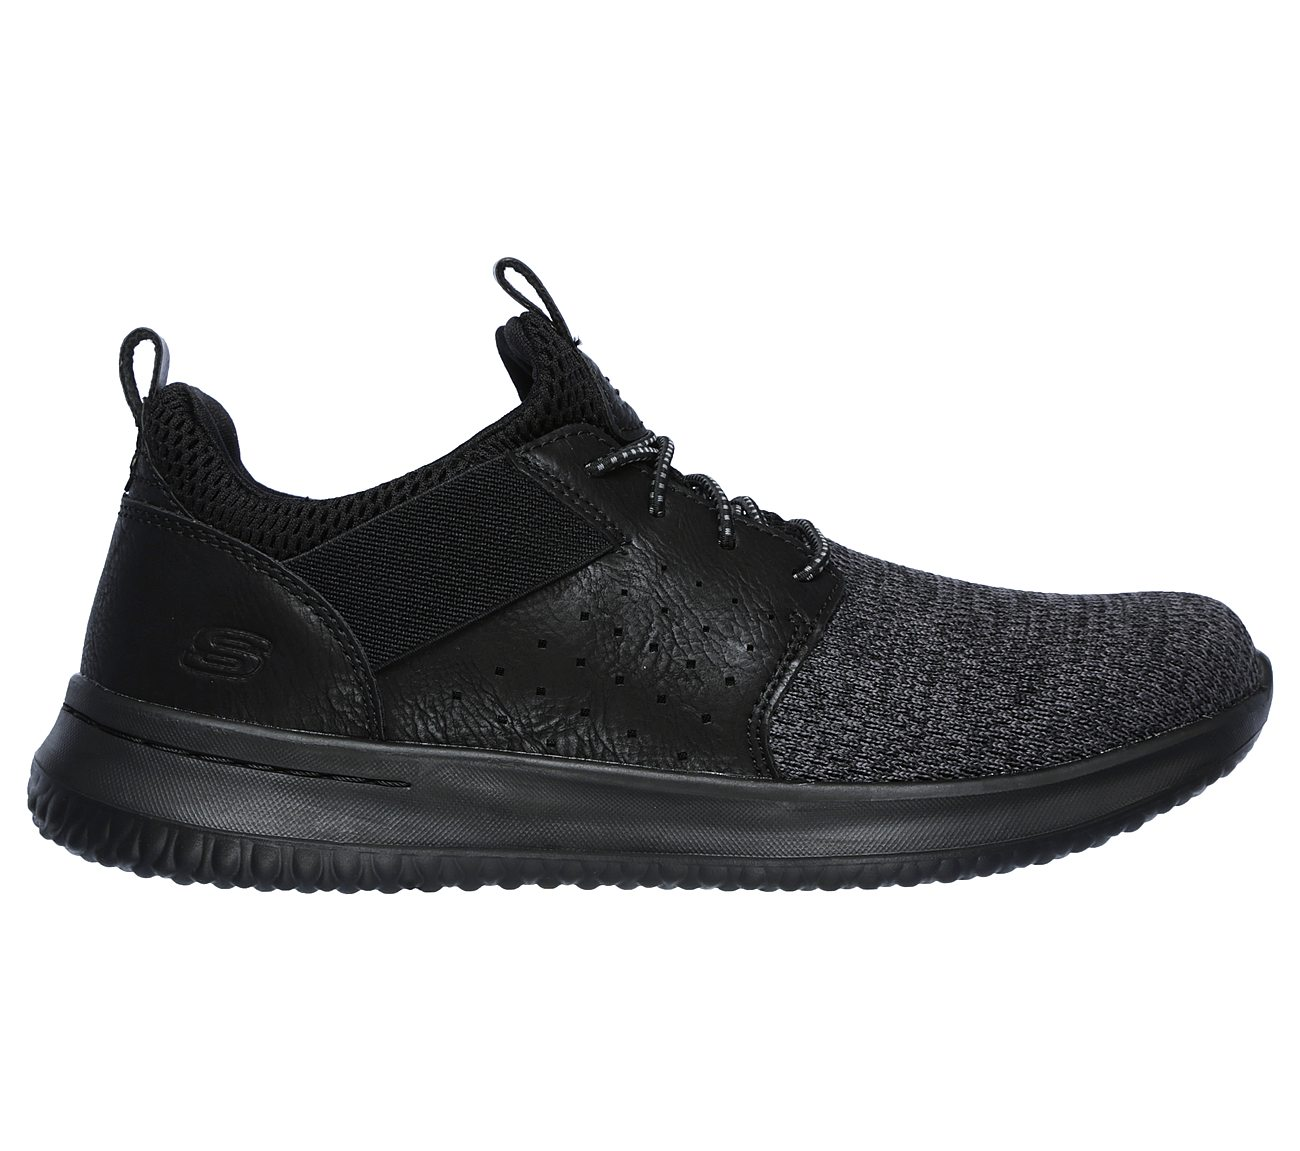 Skechers Shoes Delson Camben 65474 ltbr Online shop for sneakers, shoes and boots